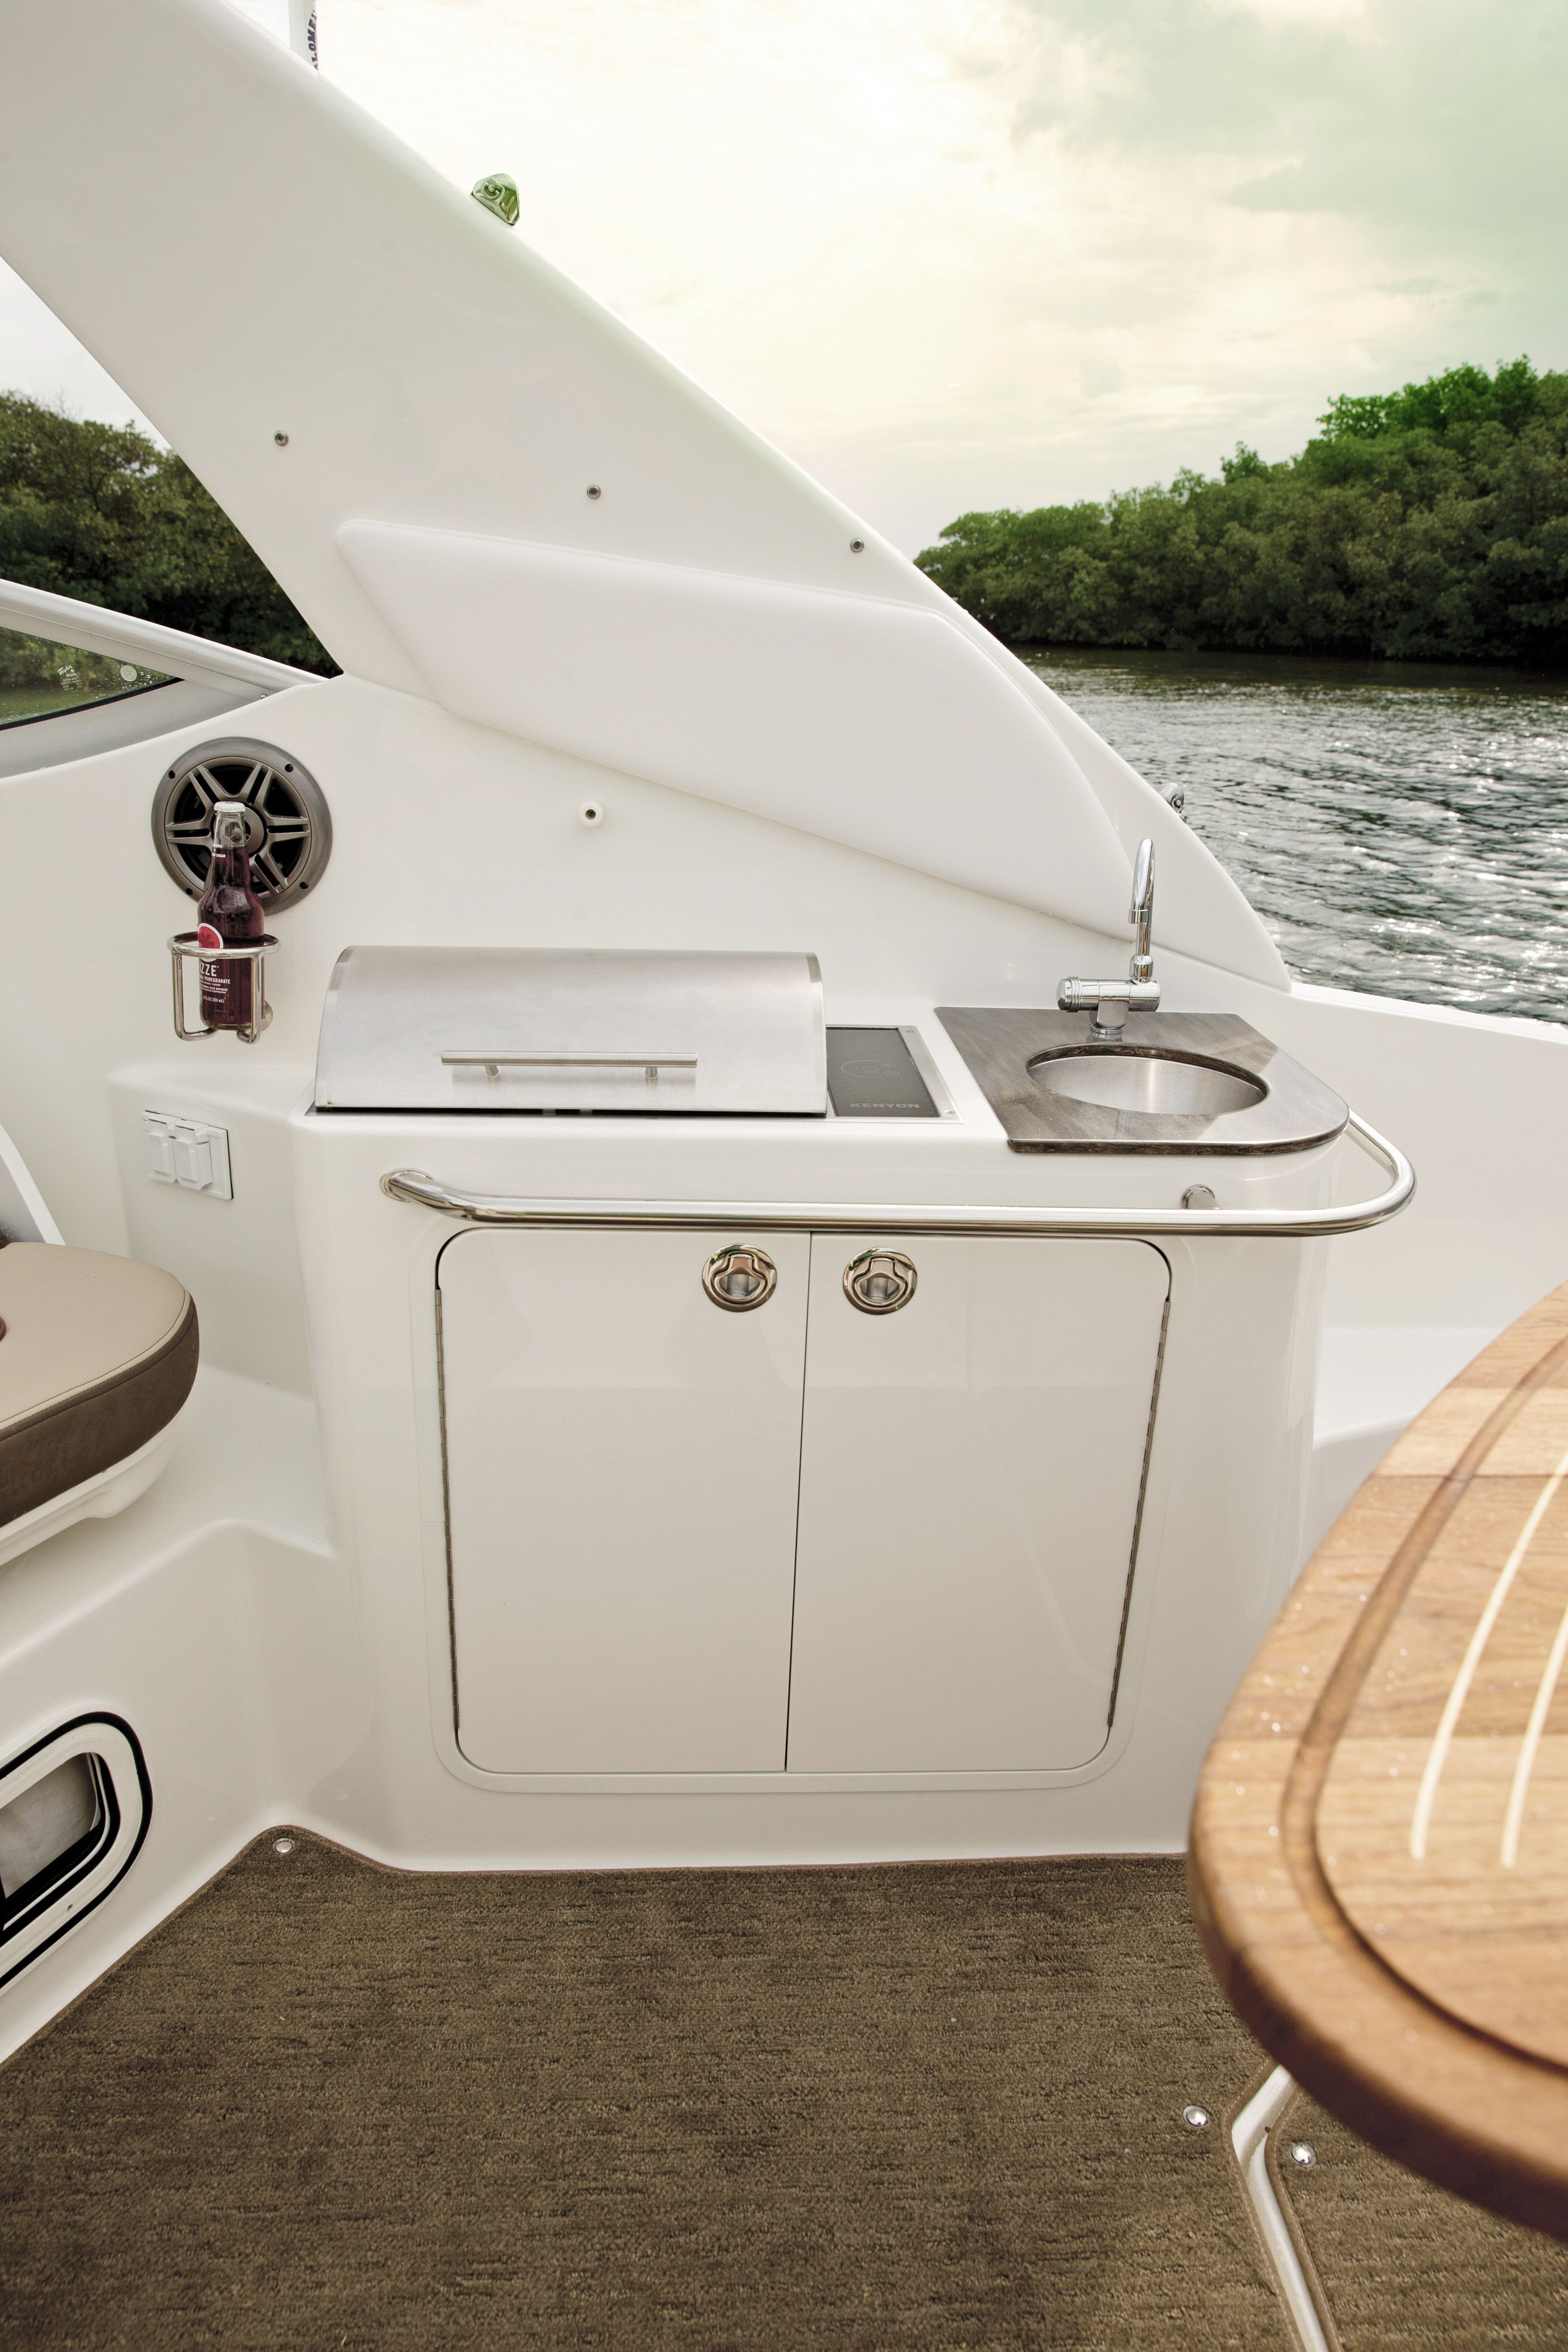 This Sea Ray 280 Sundancer Features The Floridian Built In Grill Perfect For Entertaining